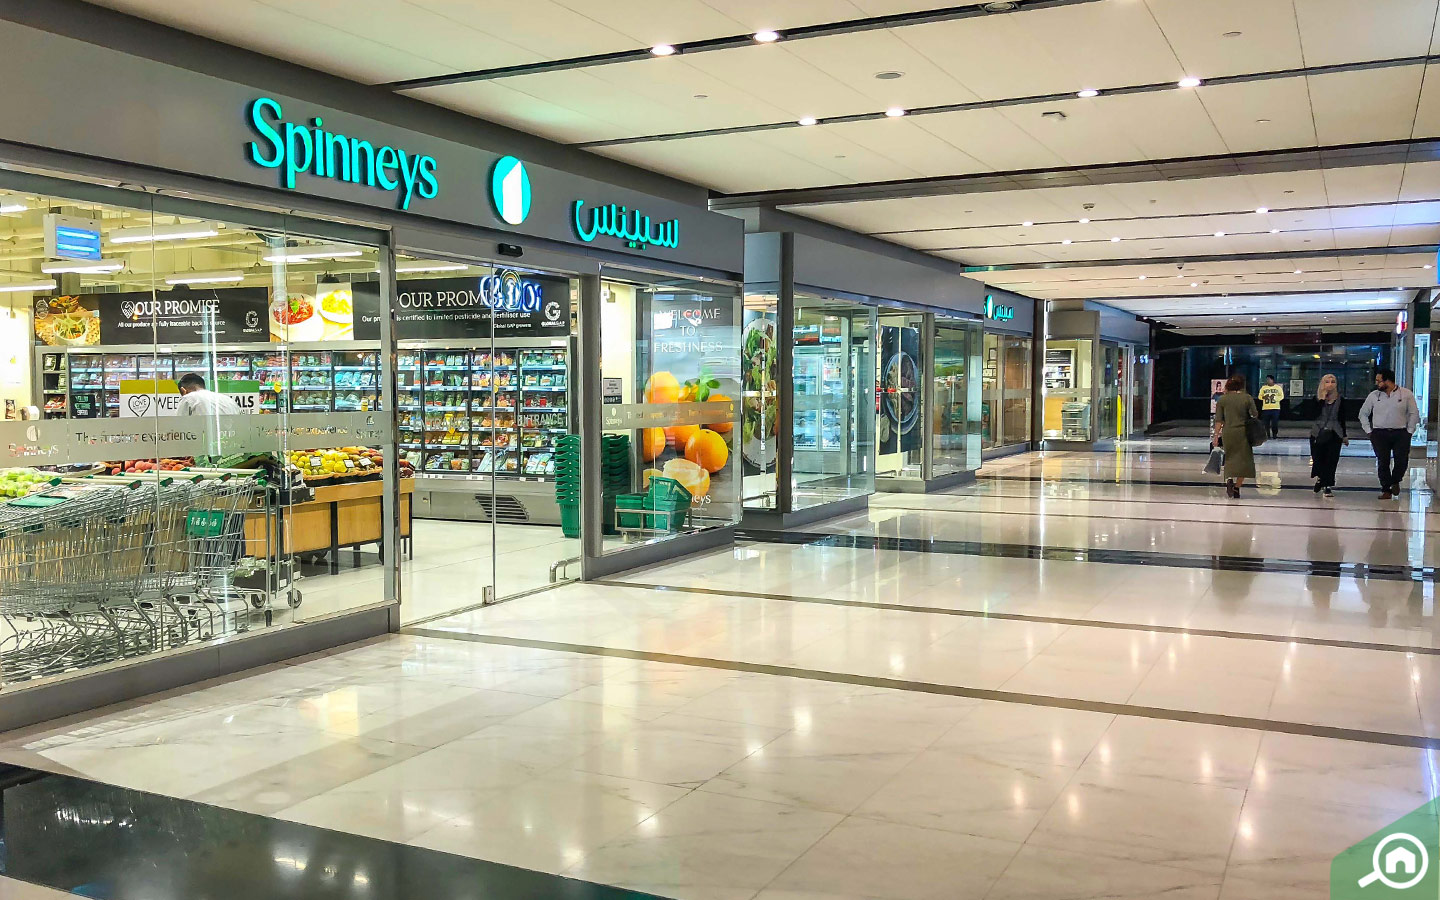 Spinneys Supermarket in DIFC